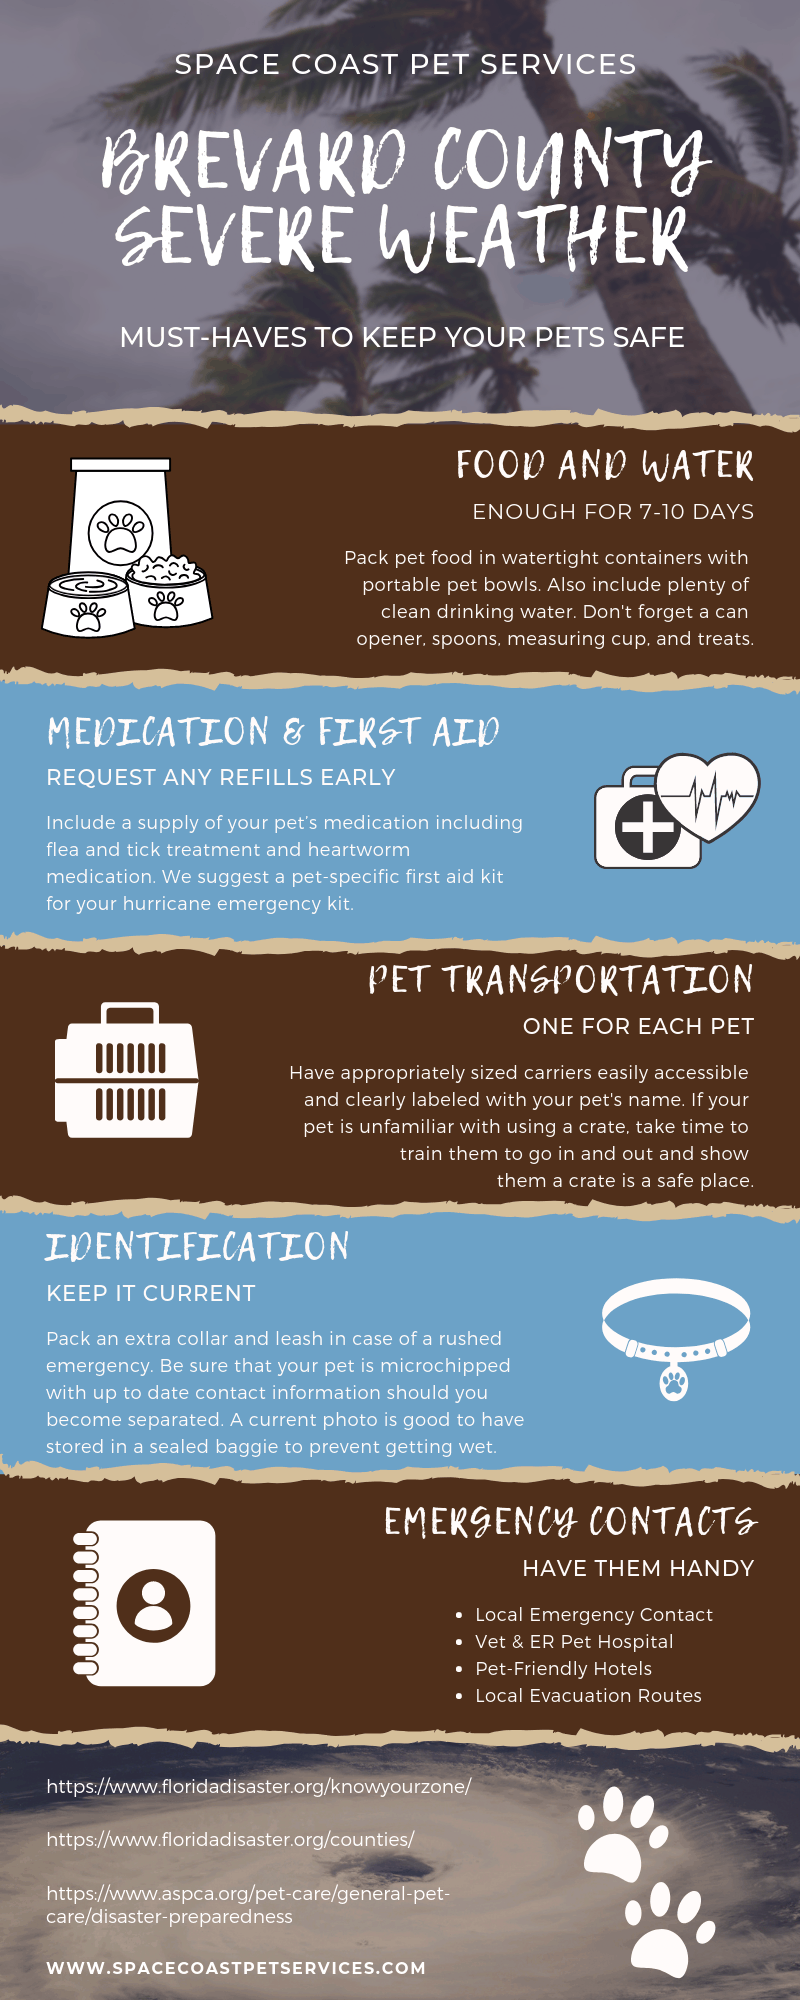 Severe Weather checklist for Pets in Brevard County, FL